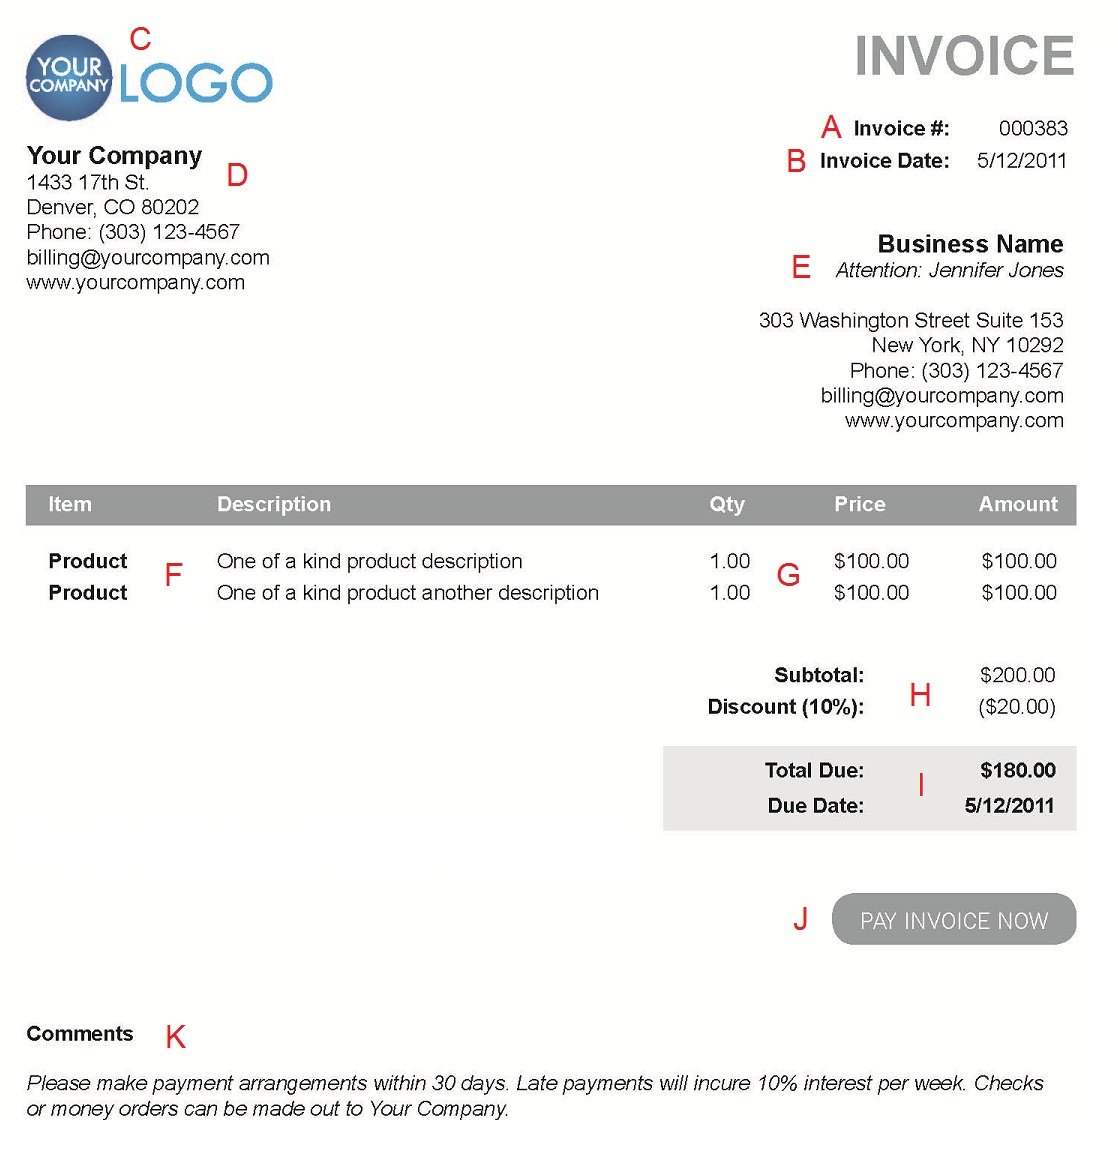 Ultrablogus  Personable The  Different Sections Of An Electronic Payment Invoice With Handsome A  With Breathtaking Requirements Of Tax Invoice Also Sample Hotel Invoice In Addition Honda Accord Invoice Price  And Free Australian Invoice Template As Well As Difference Between Invoice And Proforma Invoice Additionally Bill Invoice Format In Word From Paysimplecom With Ultrablogus  Handsome The  Different Sections Of An Electronic Payment Invoice With Breathtaking A  And Personable Requirements Of Tax Invoice Also Sample Hotel Invoice In Addition Honda Accord Invoice Price  From Paysimplecom